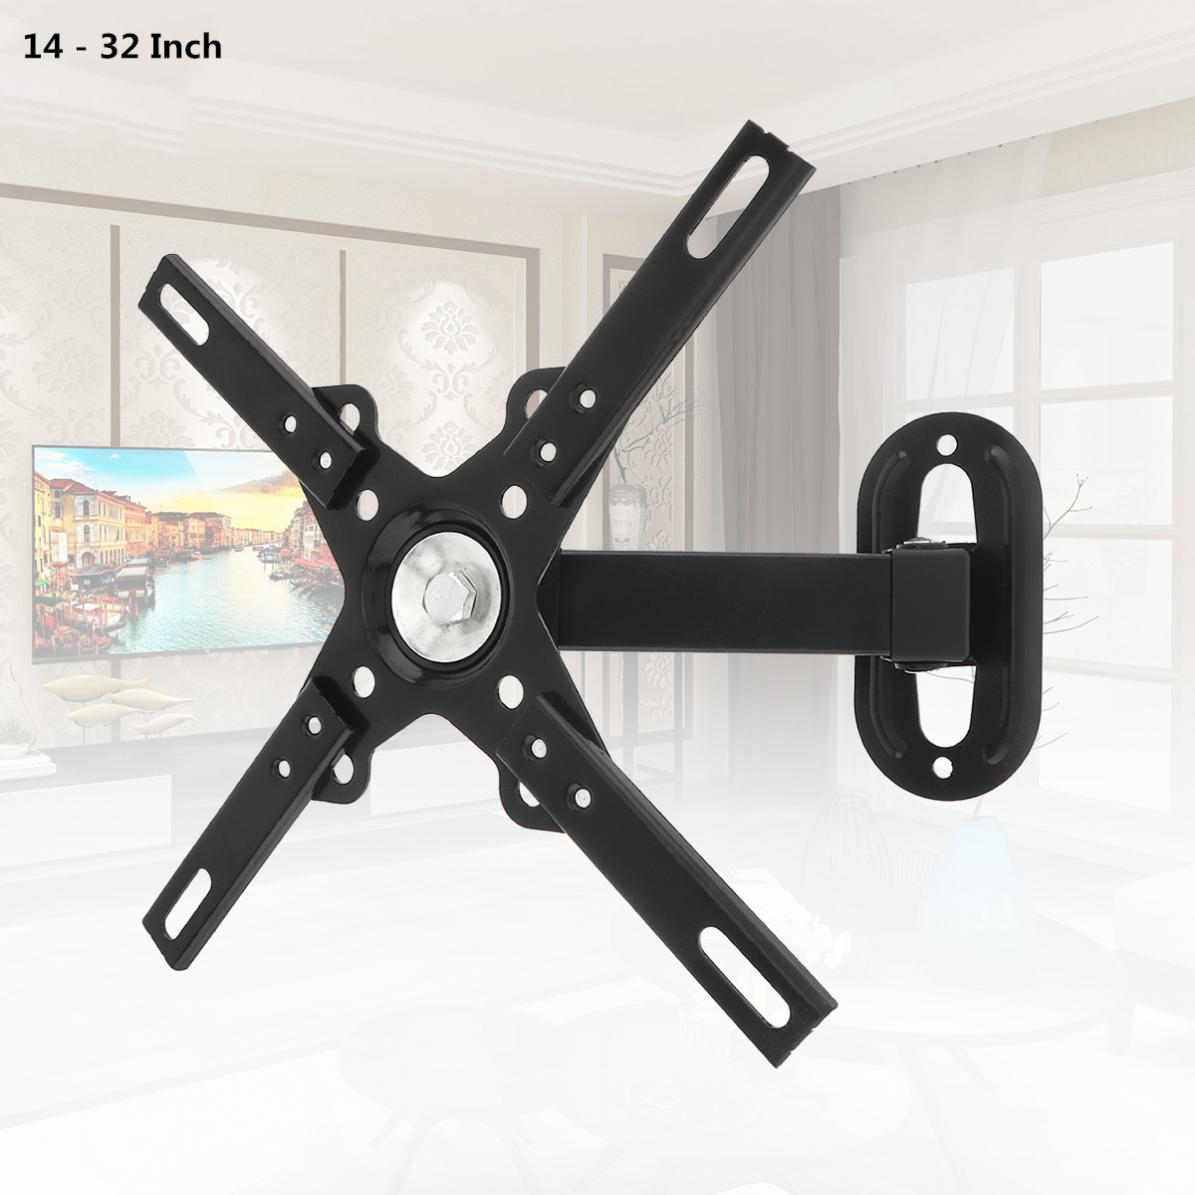 Universal 12KG Adjustable TV Wall Mount Bracket Flat Panel TV Frame Support 30 Degrees with Small Wrench for 14 - 32 Inch LCD LE